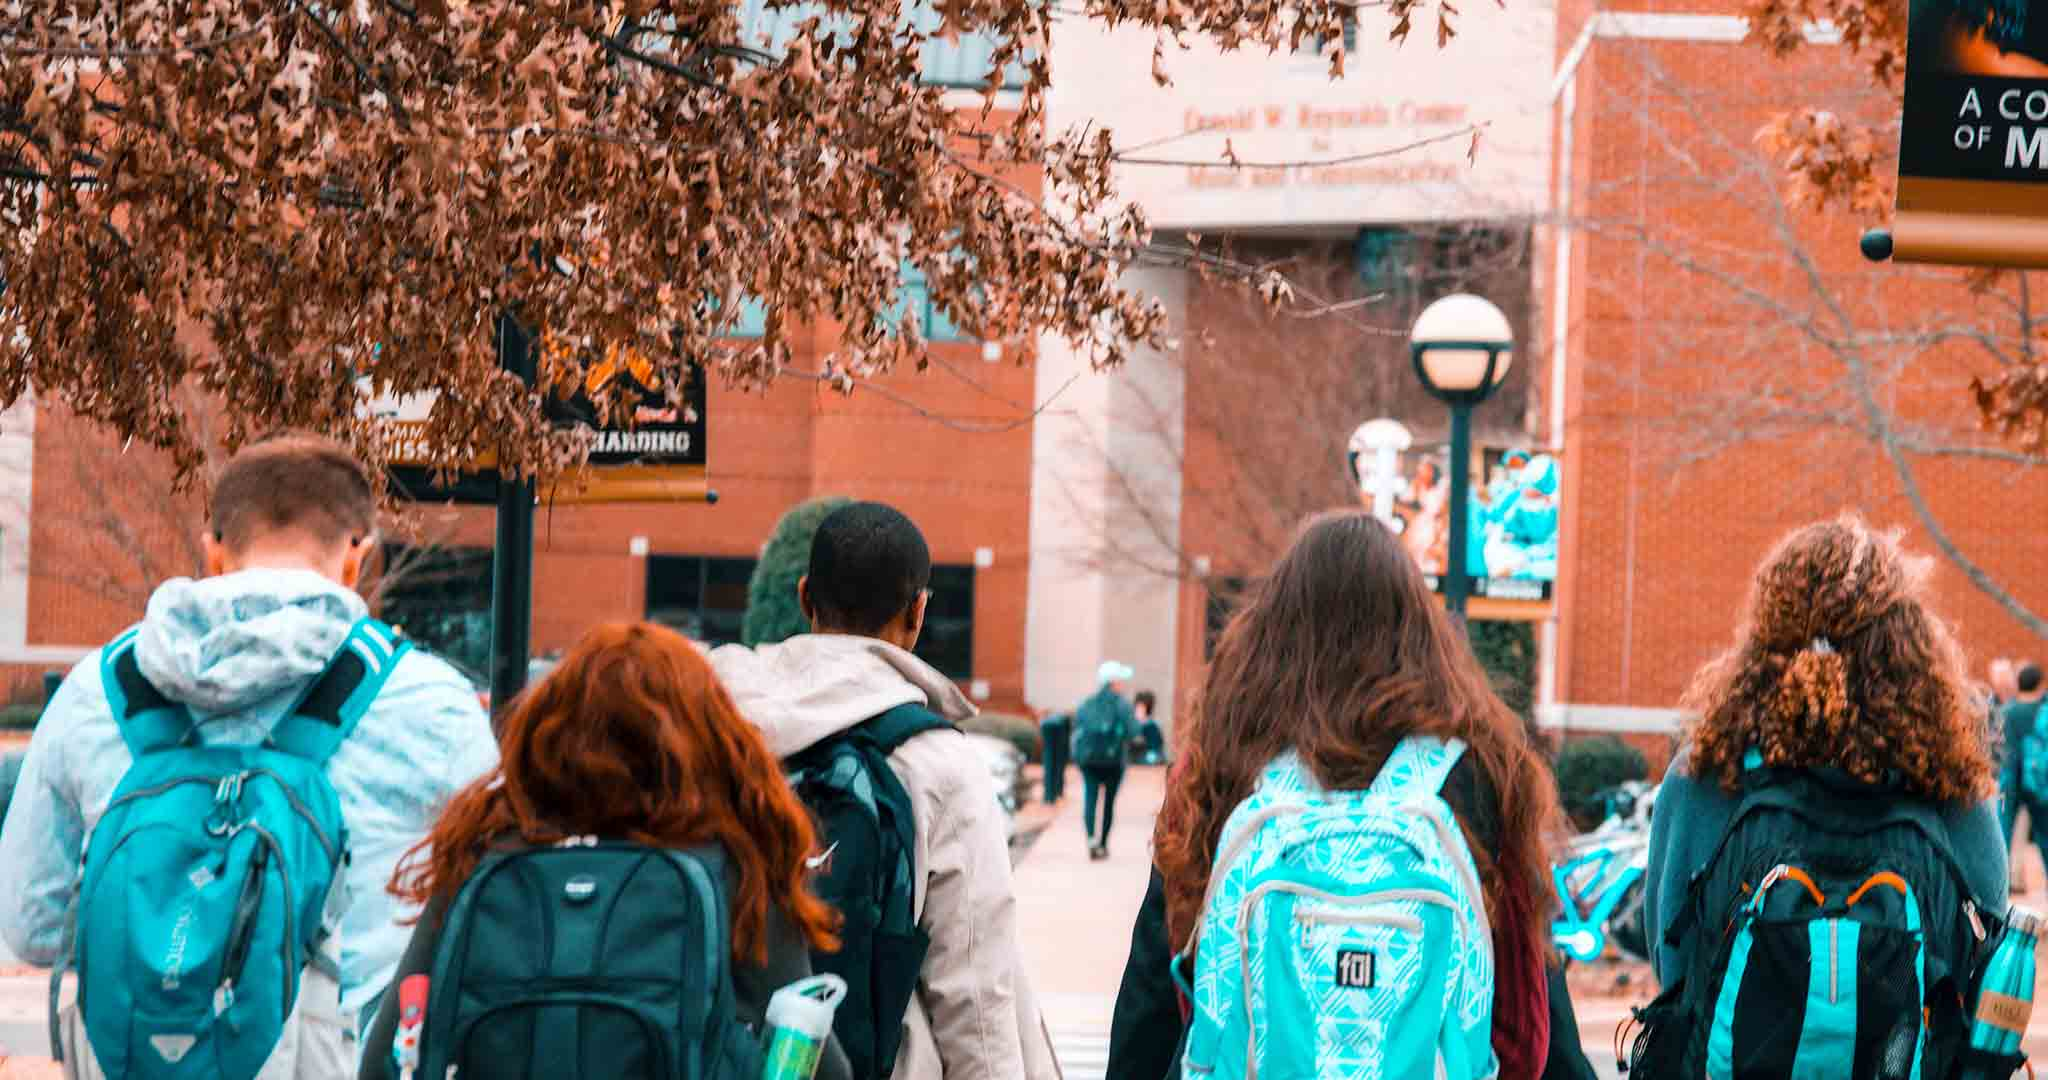 backpacks college college students student college stock photography